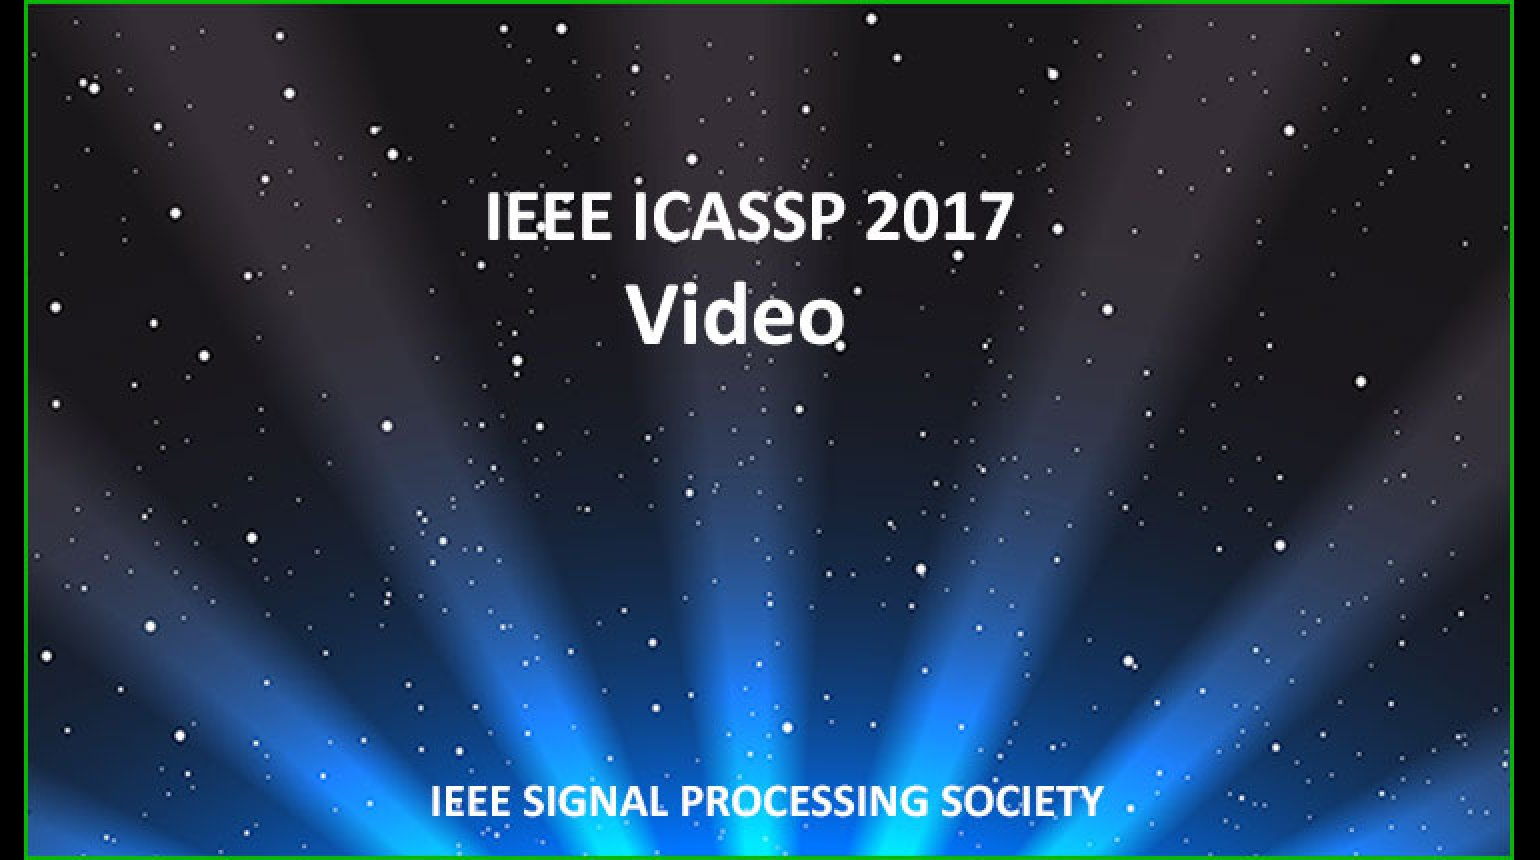 ICASSP 2017 Videos - Signal Processing Society